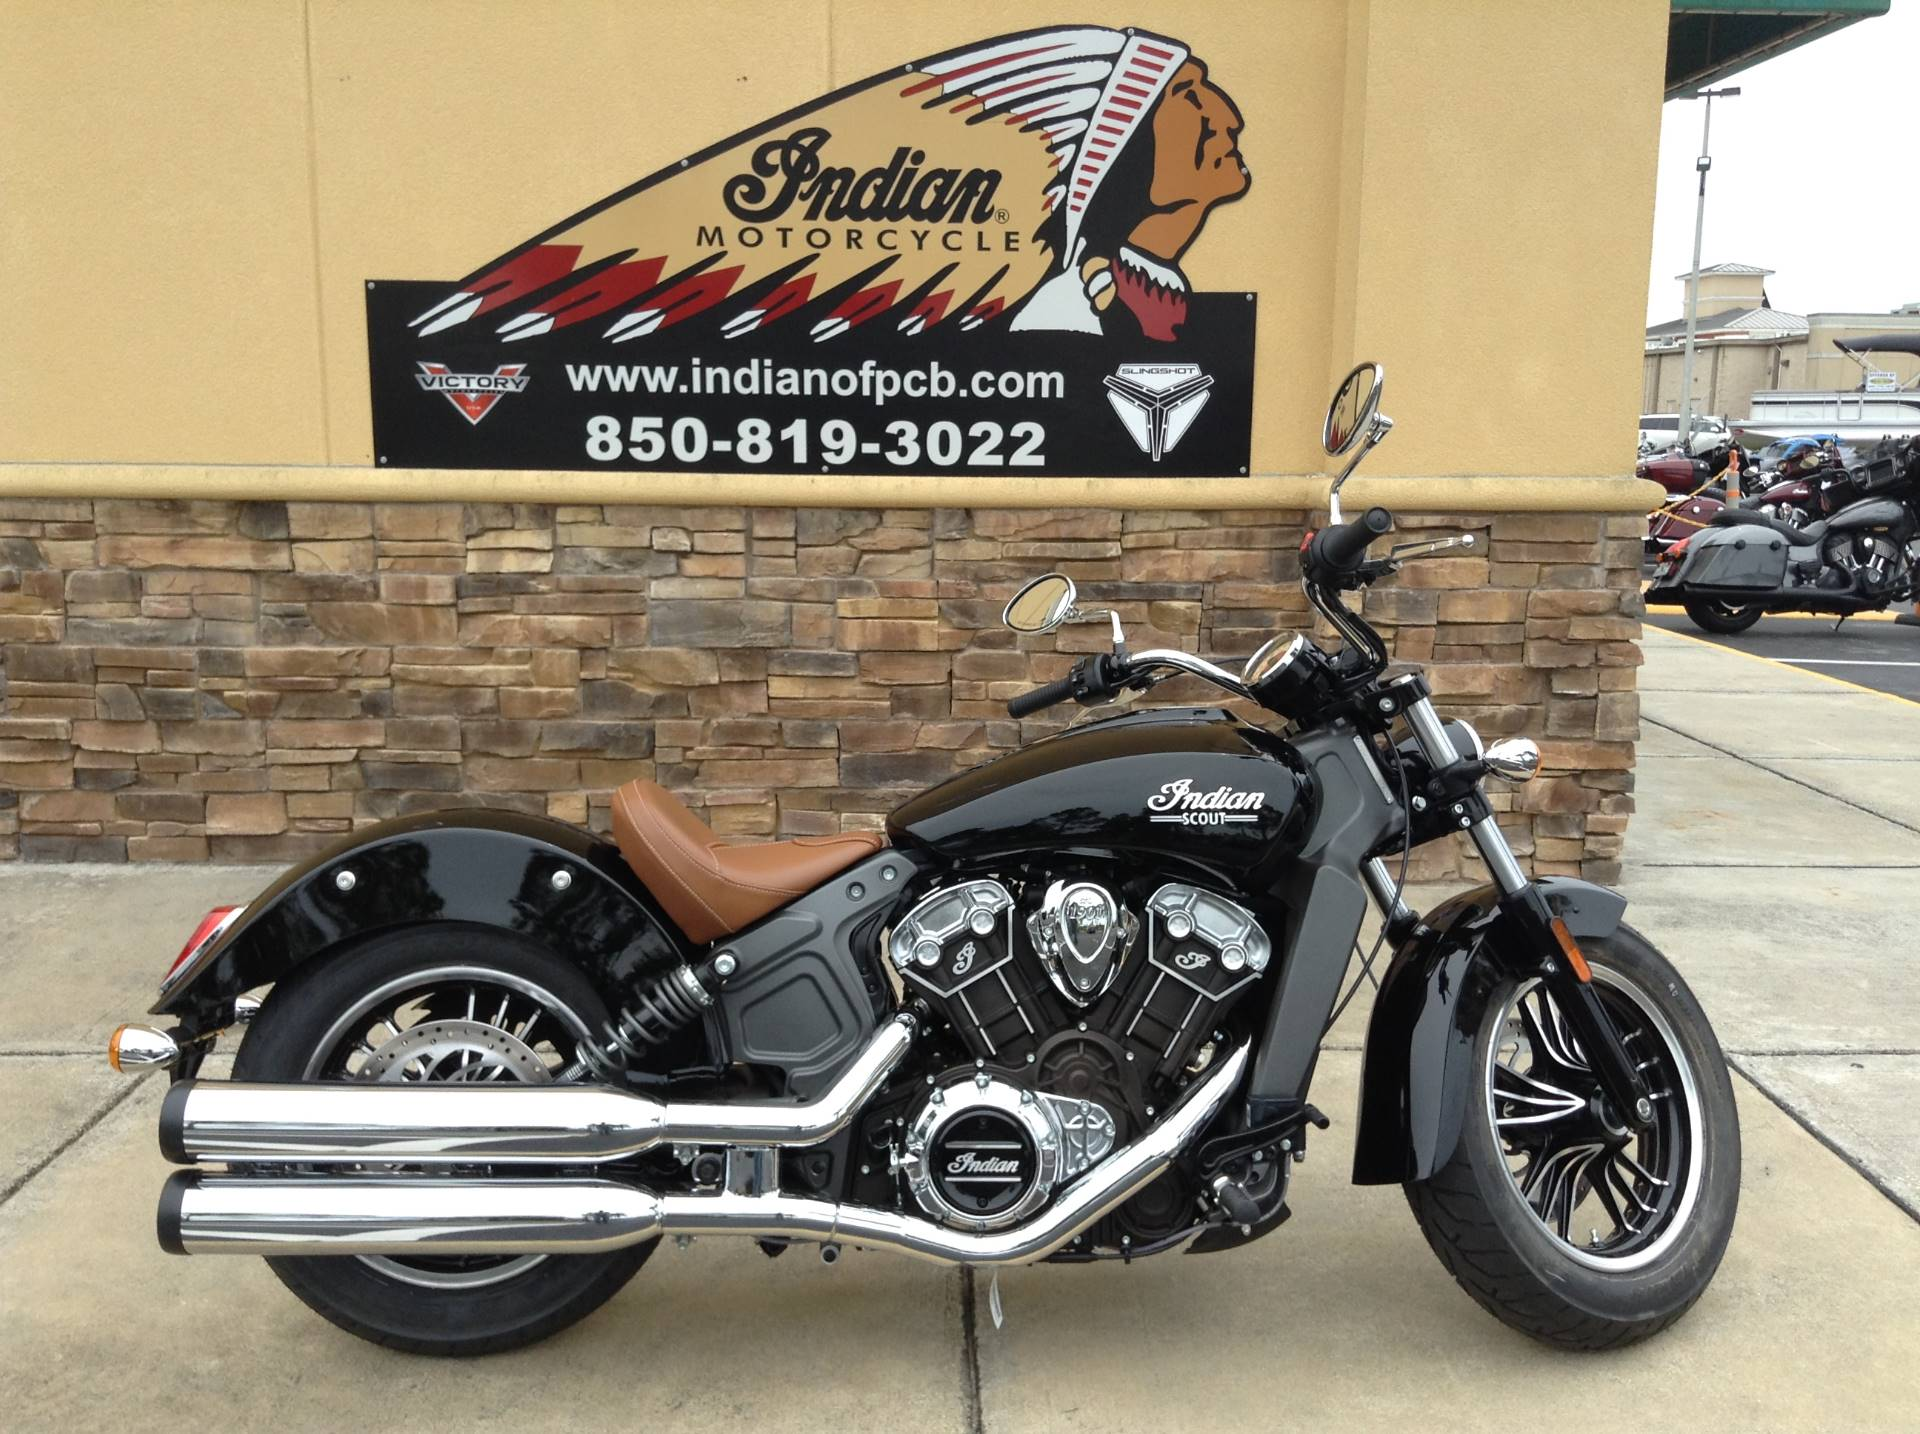 2019 Indian SCOUT in Panama City Beach, Florida - Photo 1